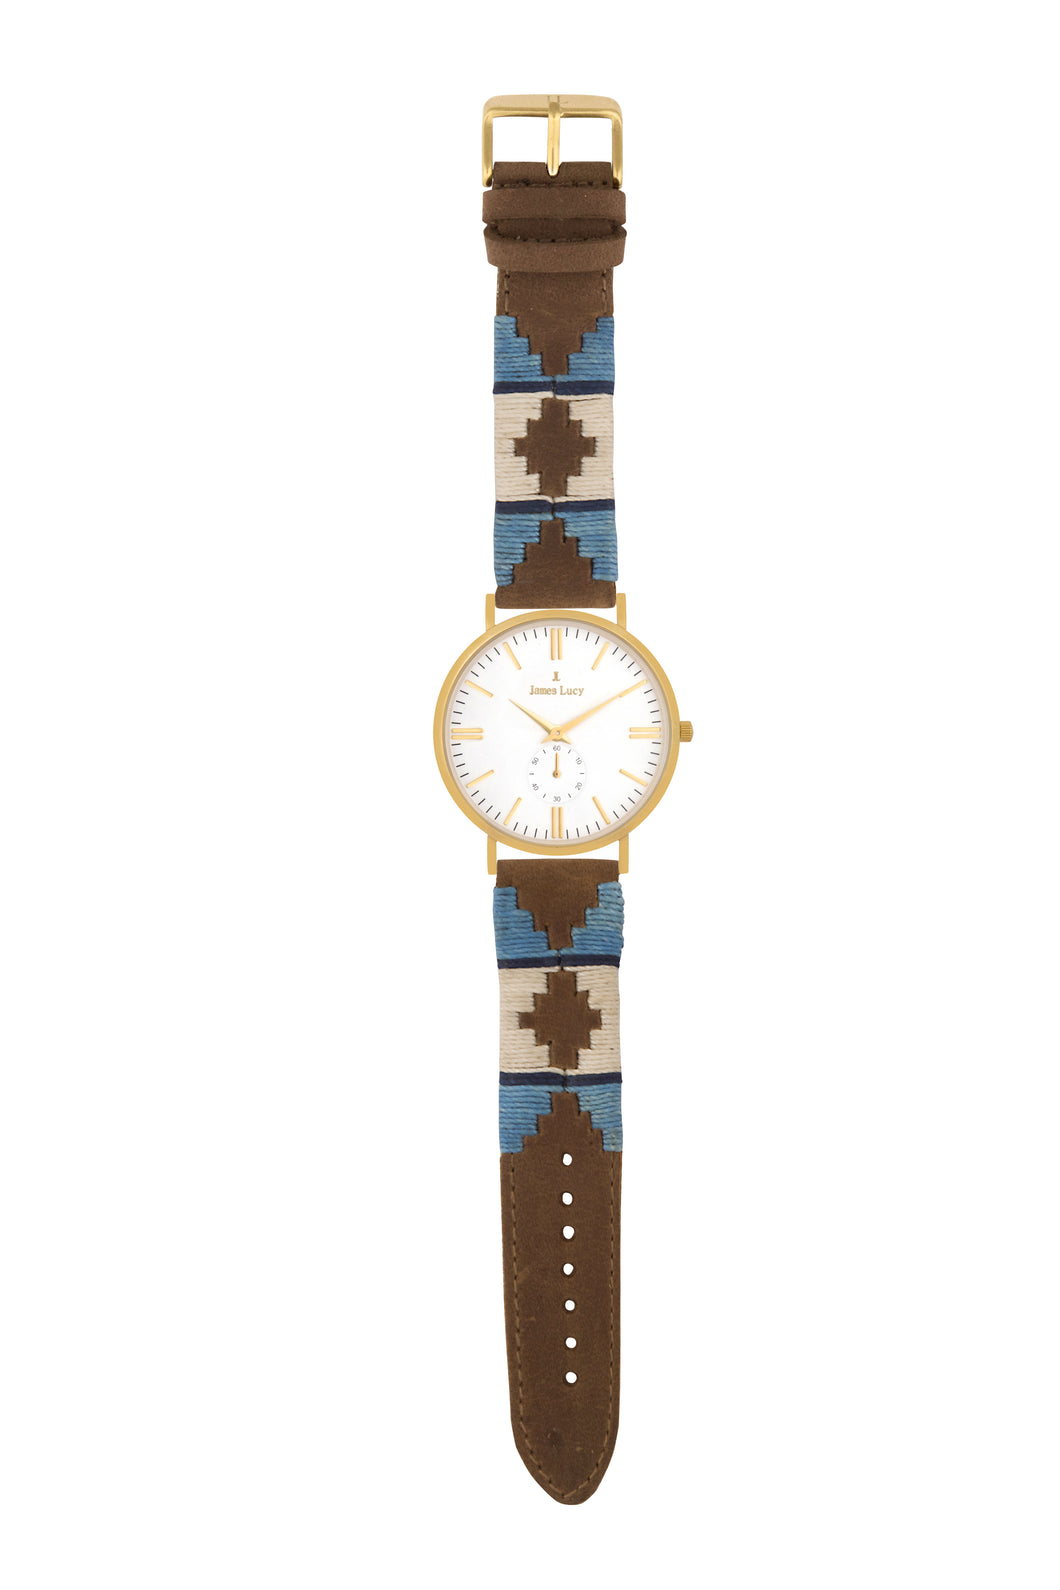 JL3 'London' Gold + Strap